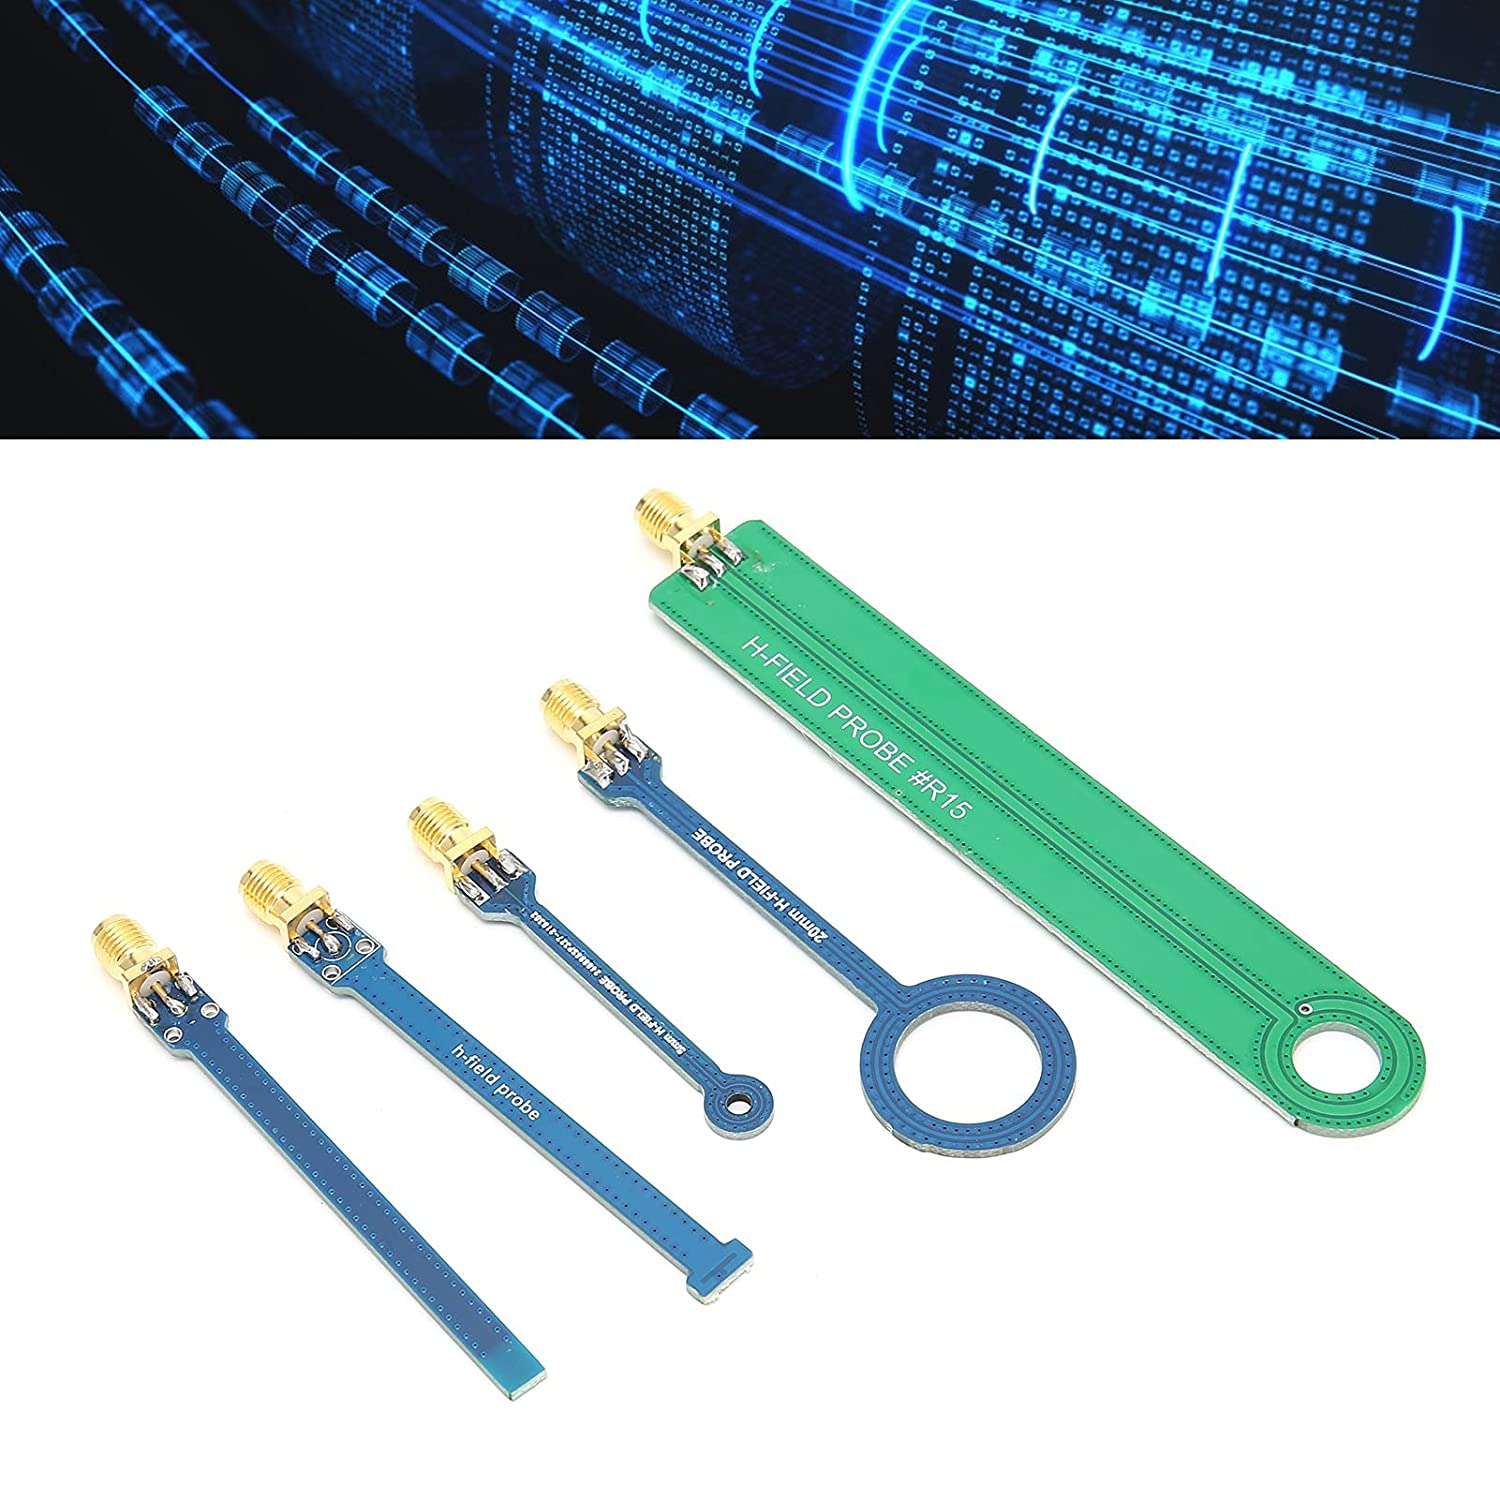 Max 57% OFF Super sale period limited Magnetic Field Probe Printed Circuit Working Board 9 Frequency